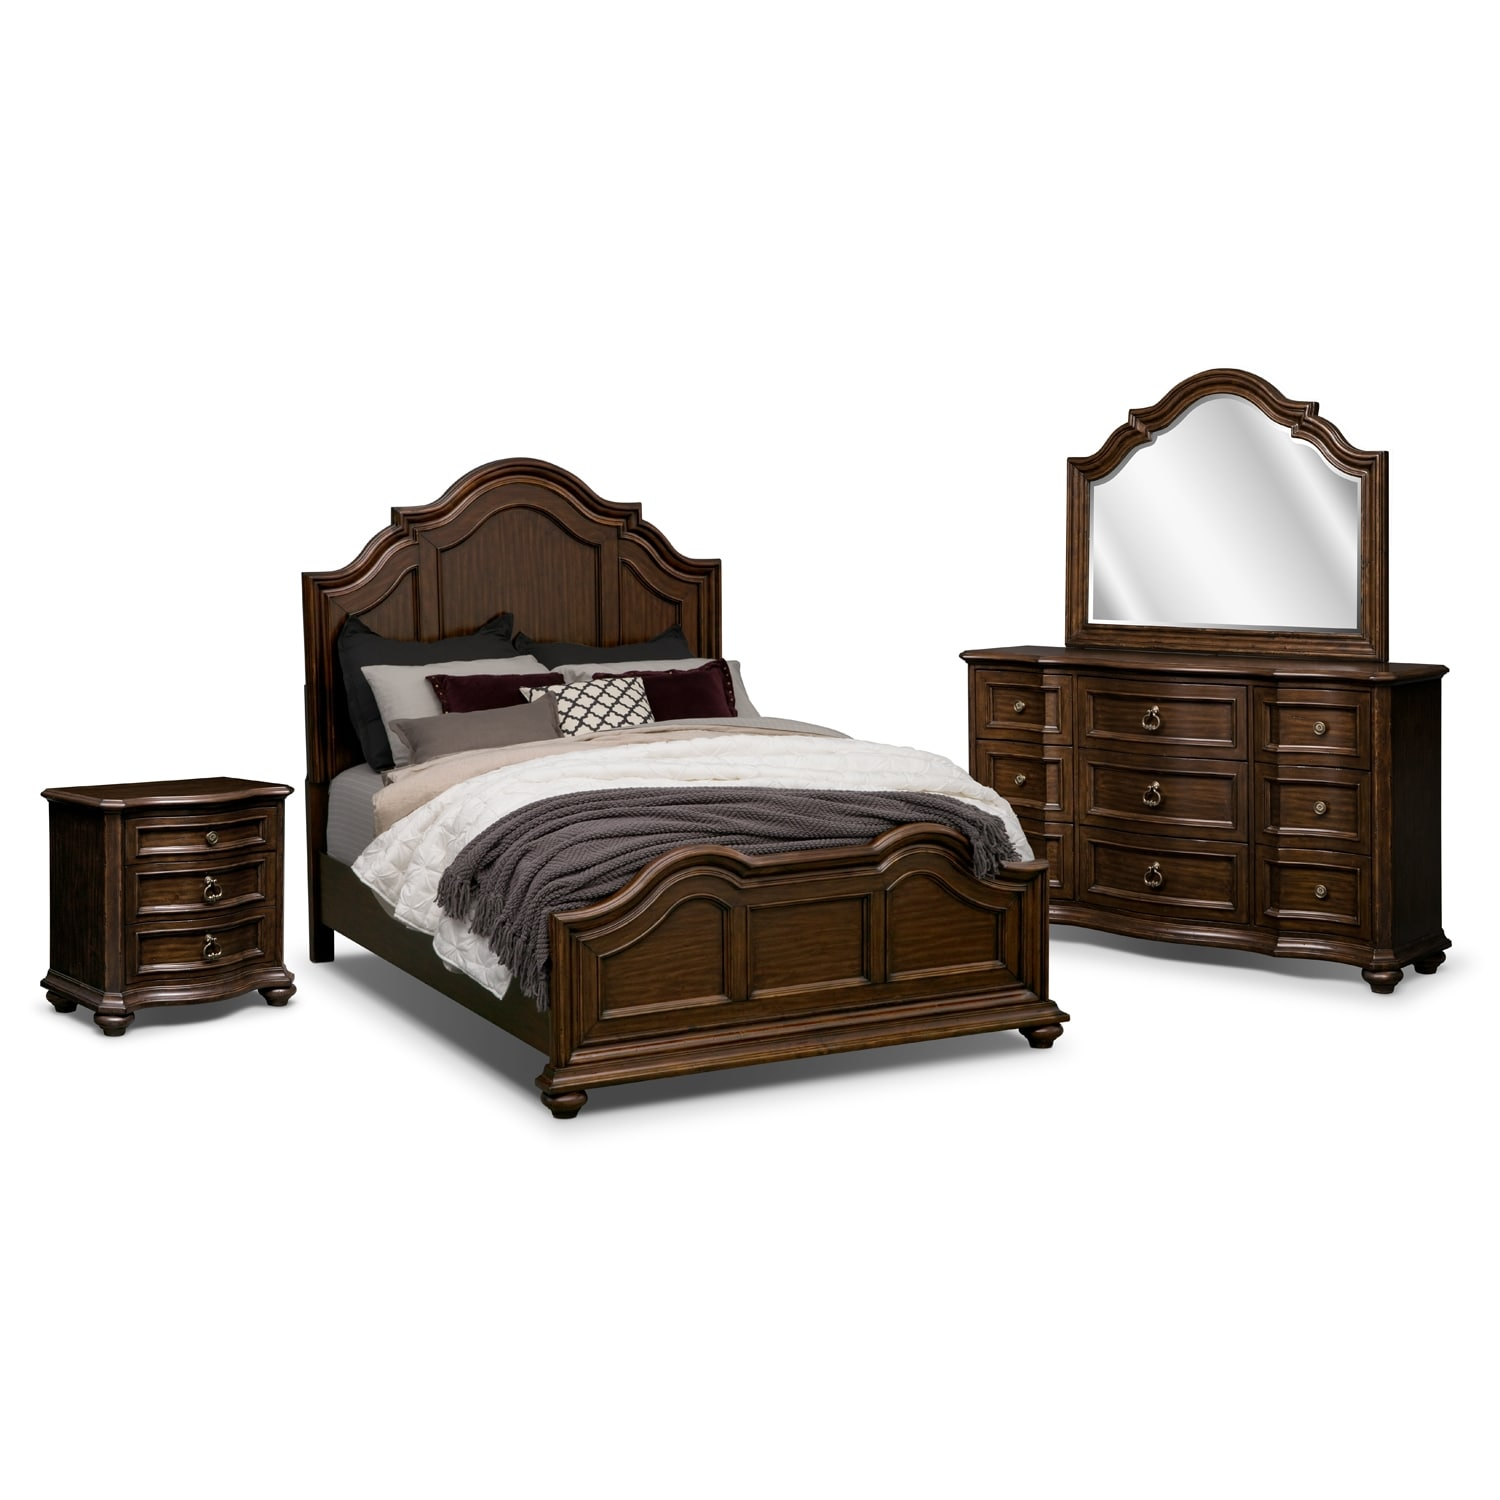 American signature furniture bedroom sets crowdbuild for for Signature furniture